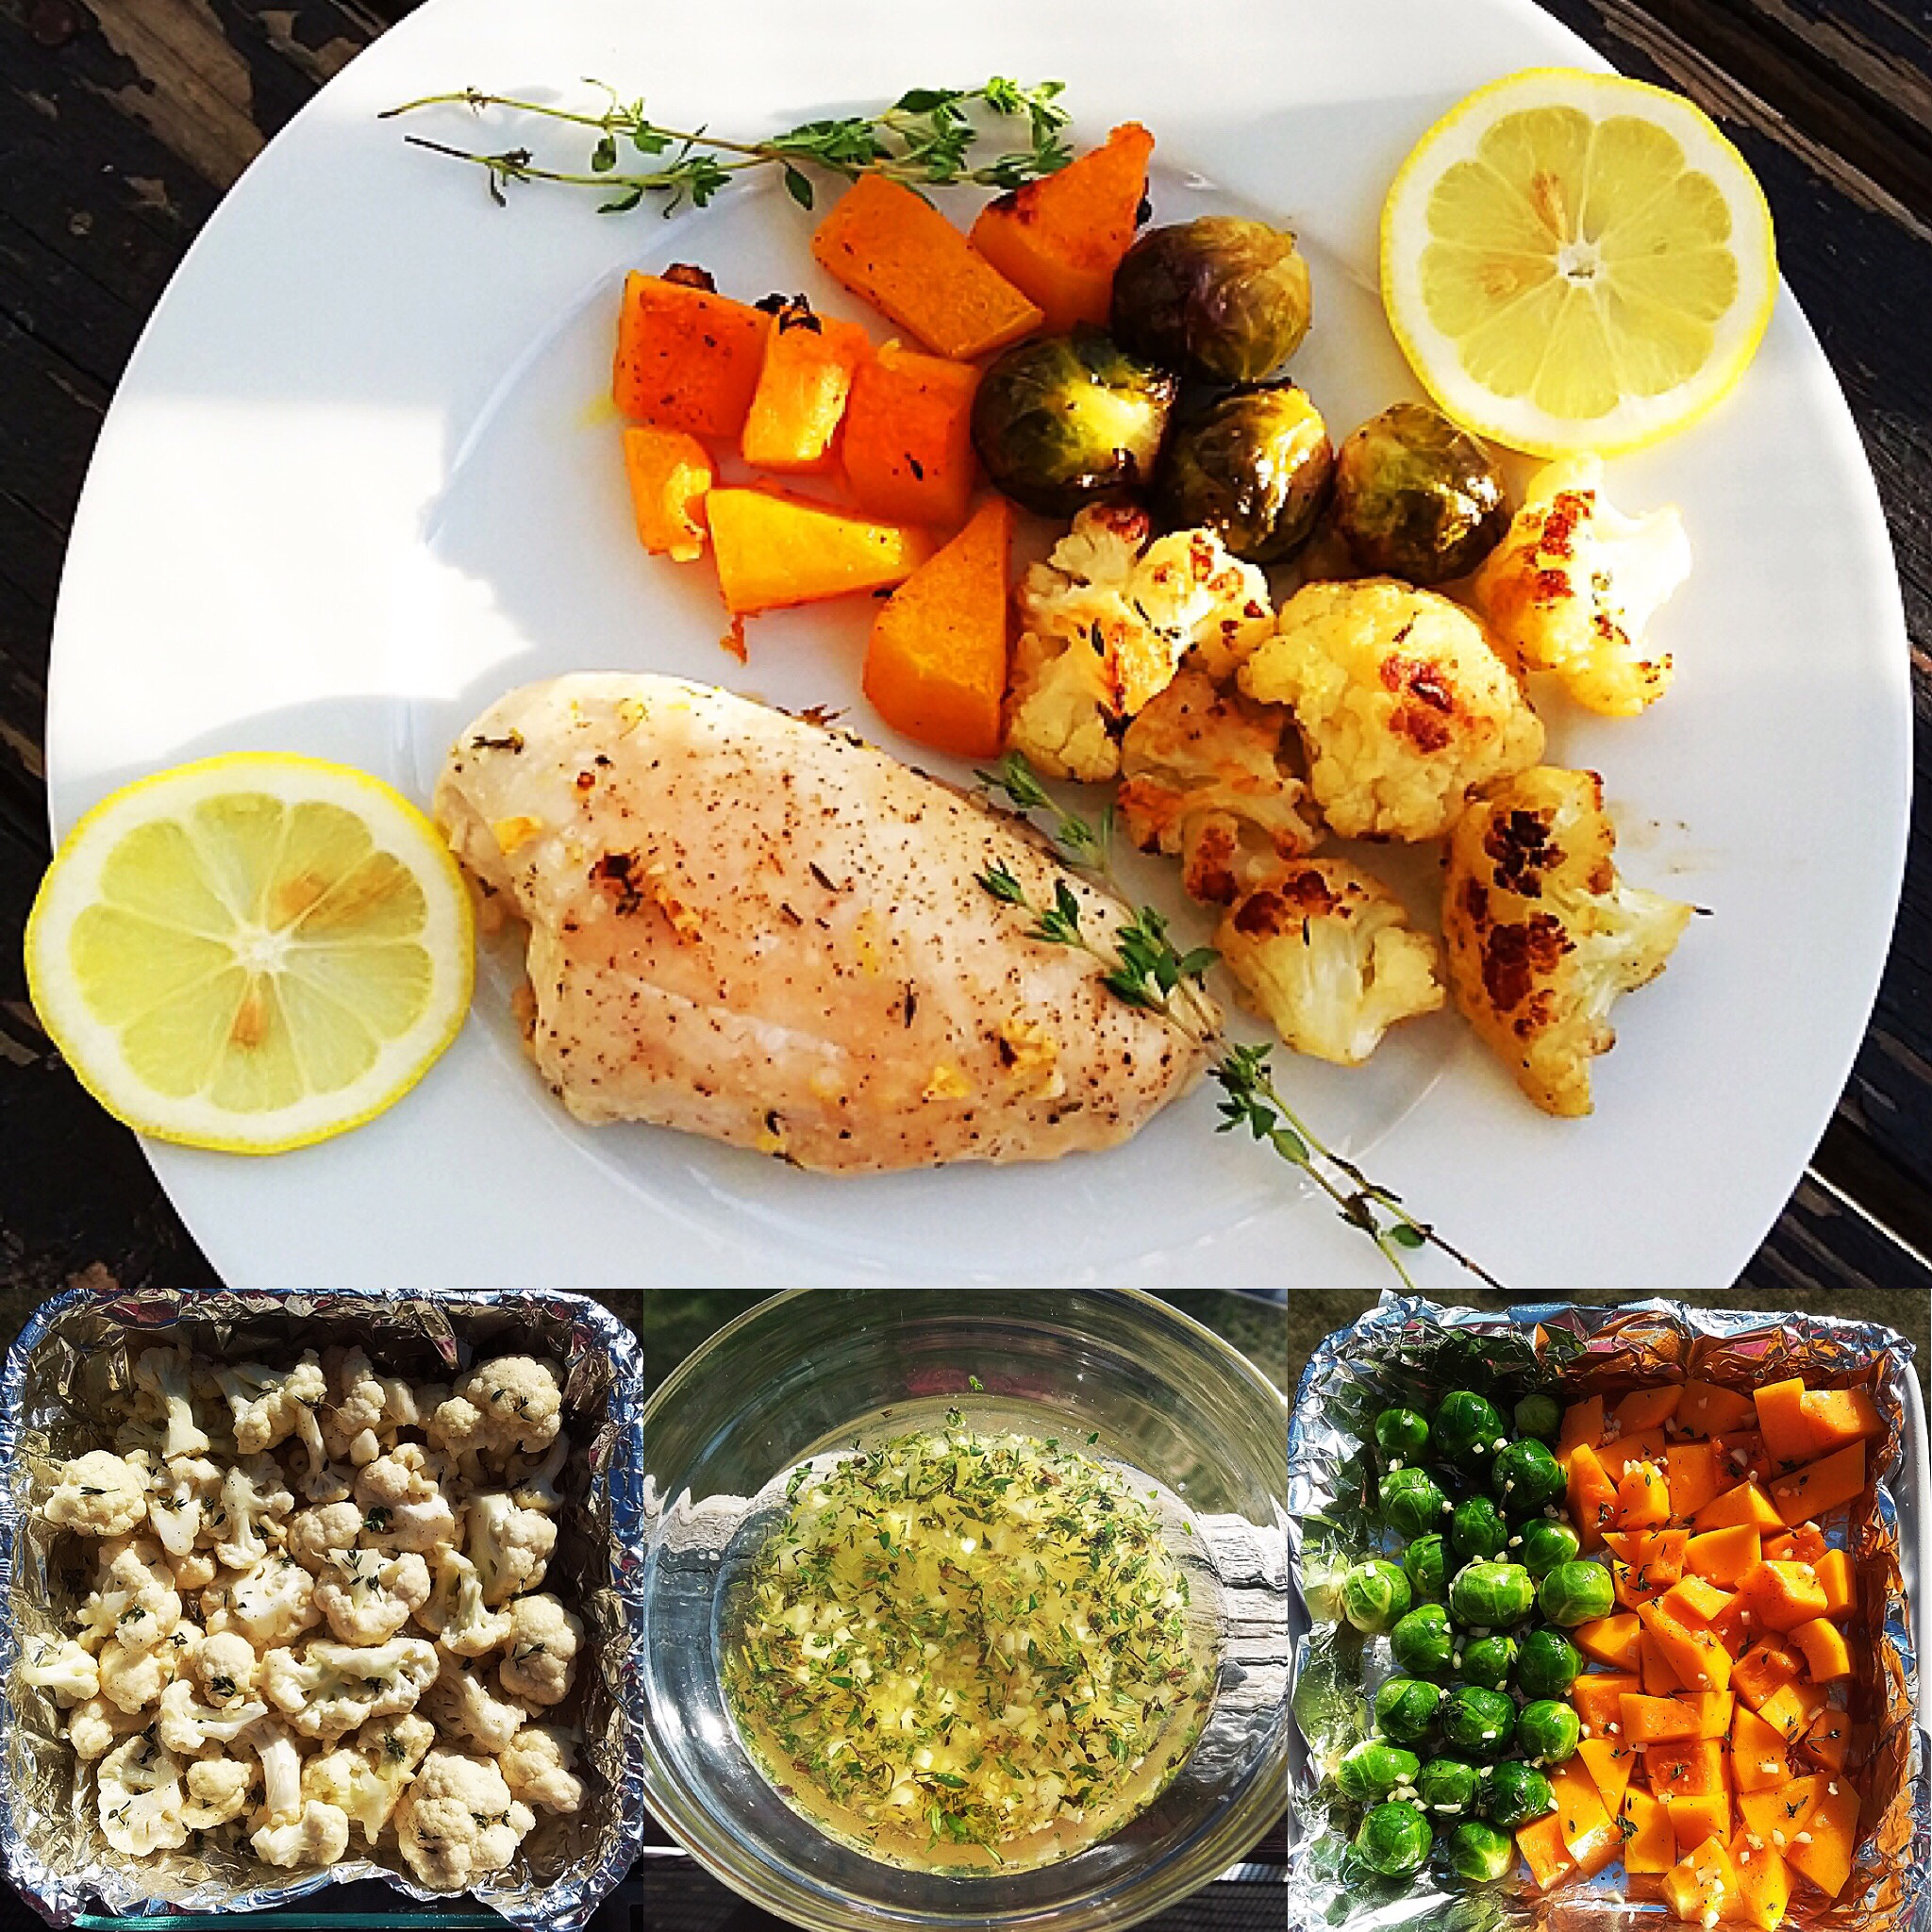 Roasted Lemon-Thyme Chicken with Fall Veggies